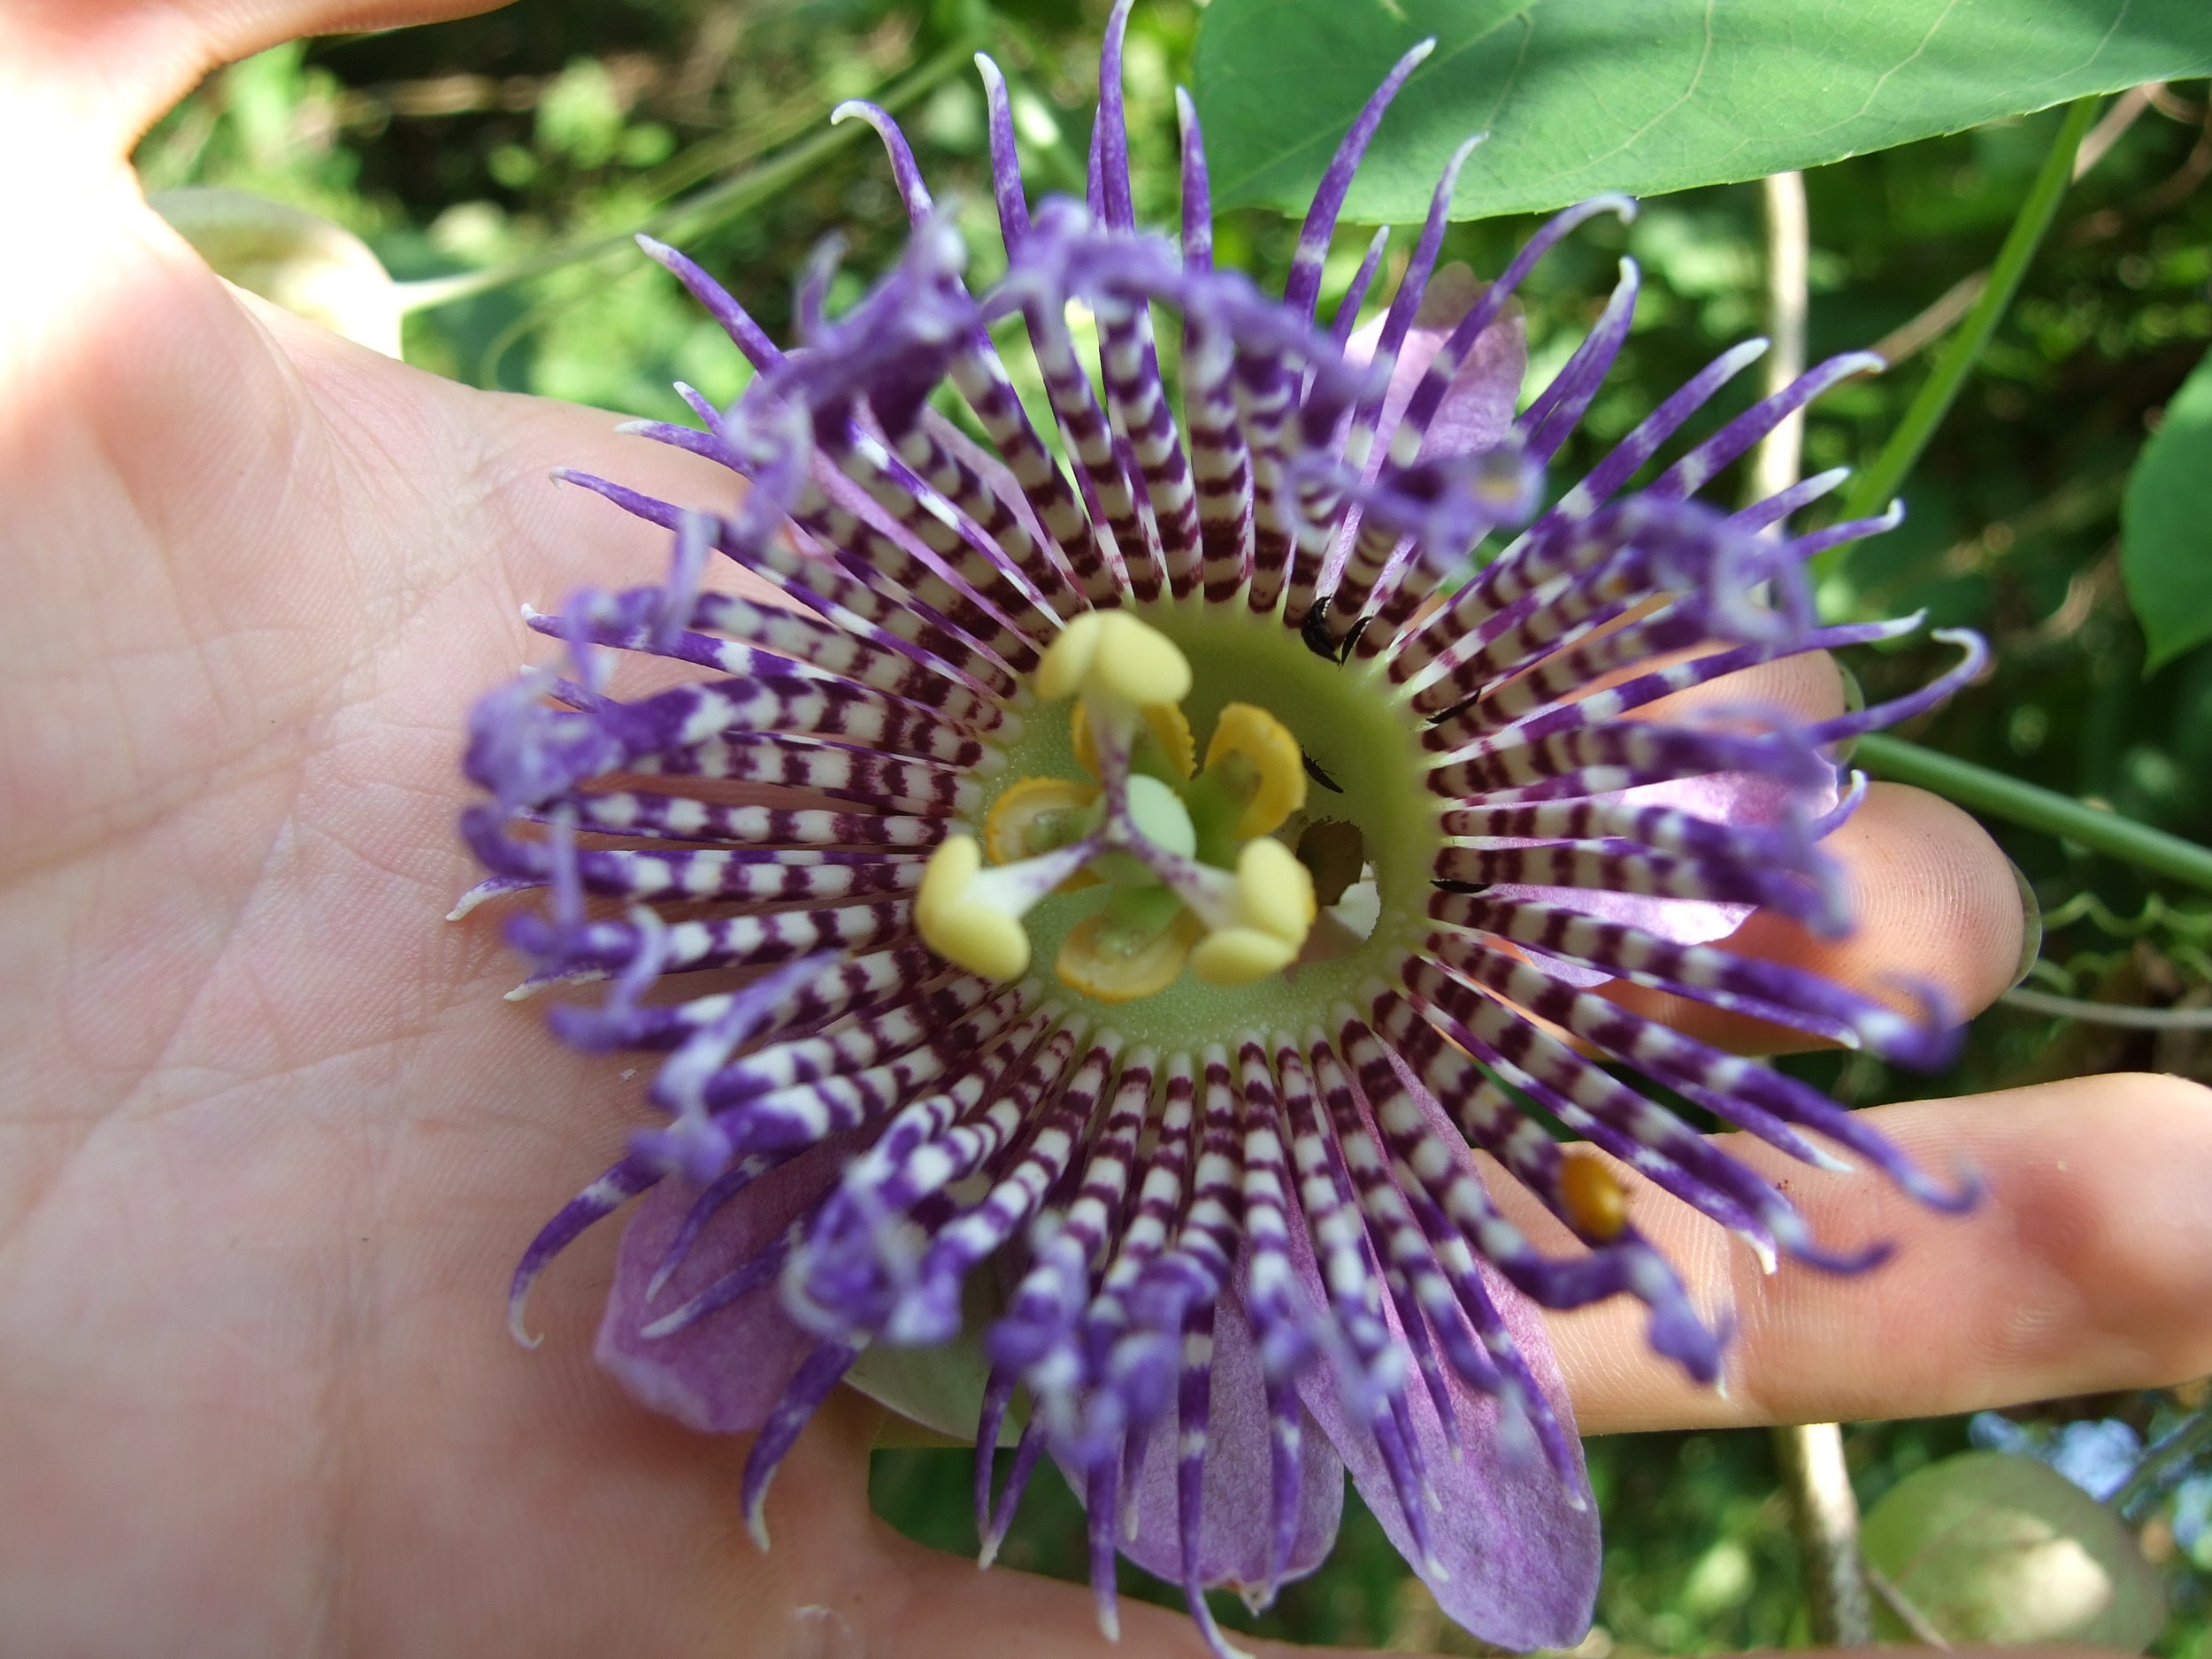 Passiflora seemanii close up.